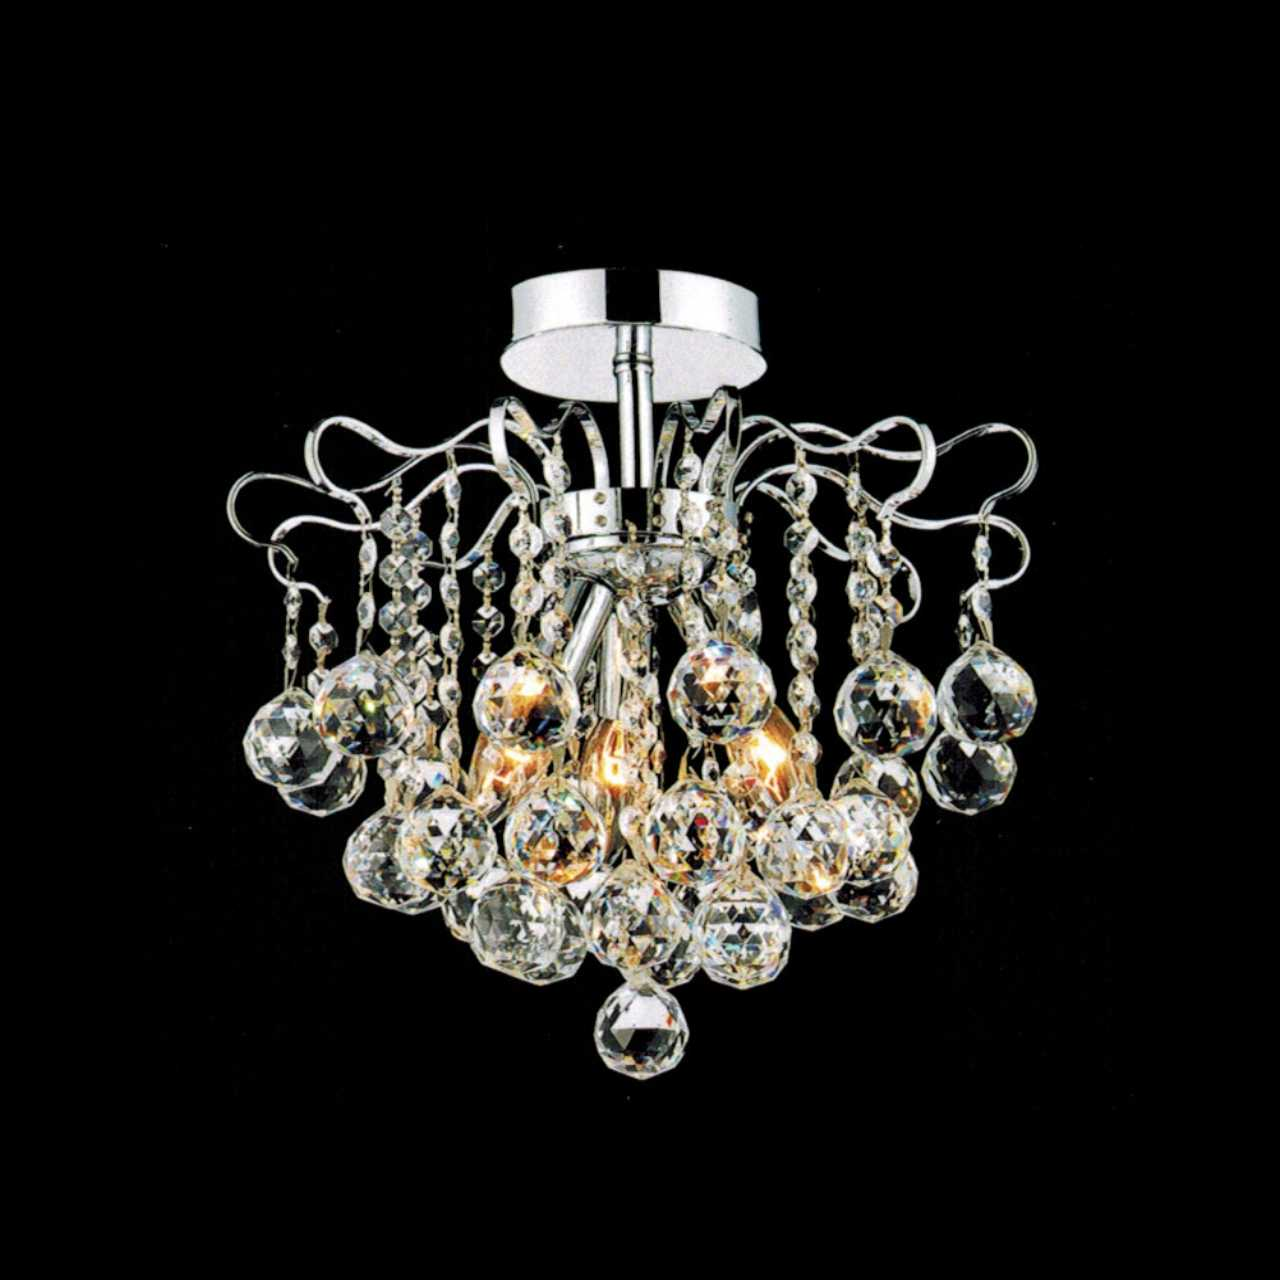 Brizzo lighting stores 14 formosa crystal semi flush mount round picture of 14 formosa crystal semi flush mount round chandelier chrome gold 3 arubaitofo Choice Image